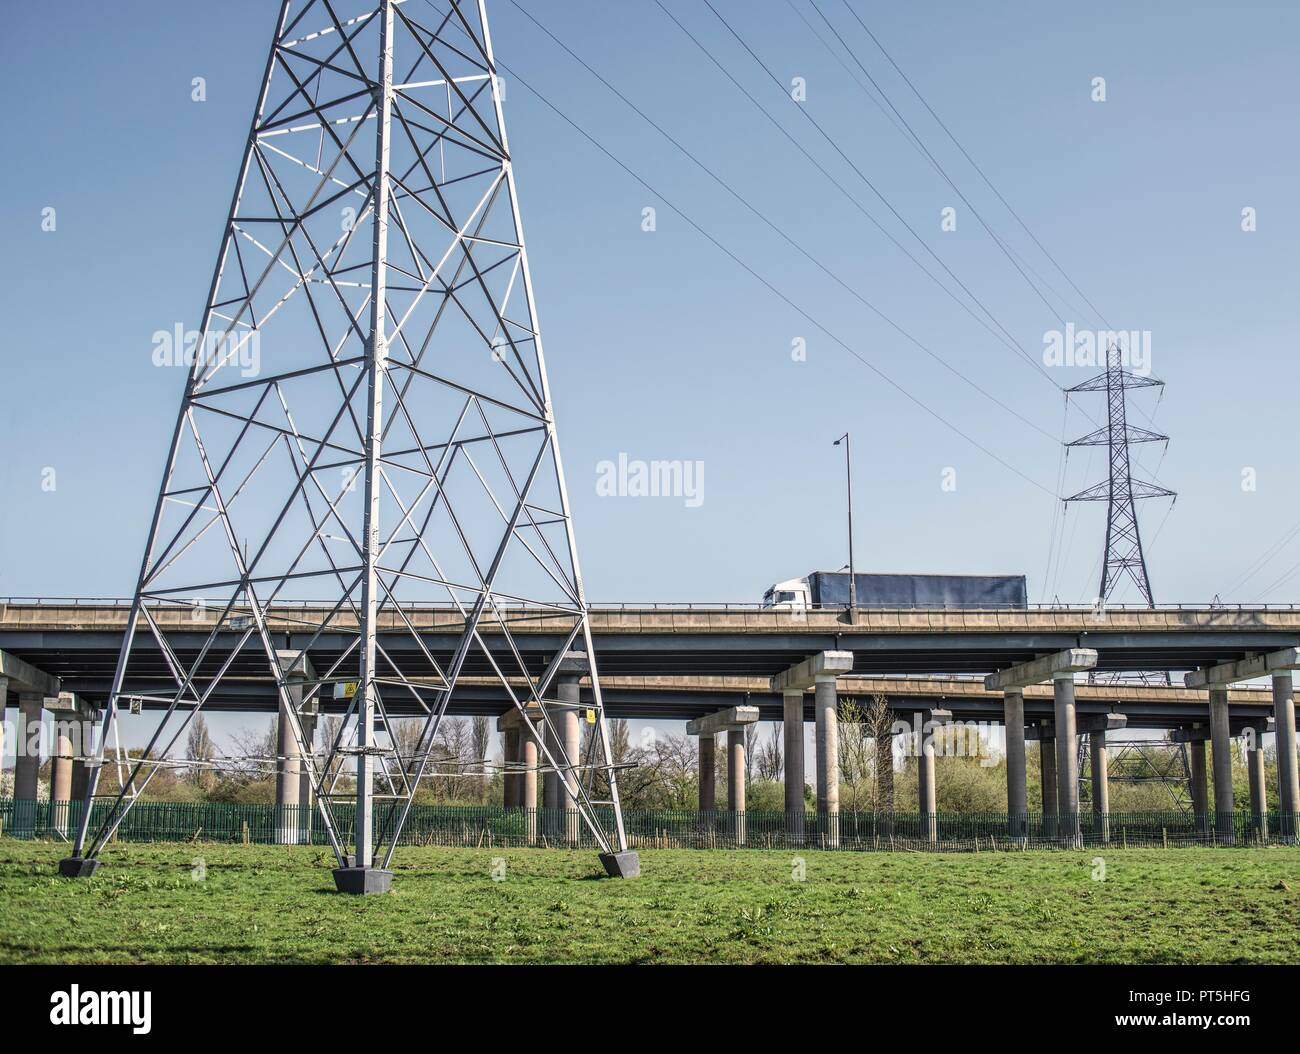 Transportation infrastructure. Flyovers at motorway interchange. This is the M5 at the interchange with the M6 in West Bromwich, West Midlands, UK. - Stock Image